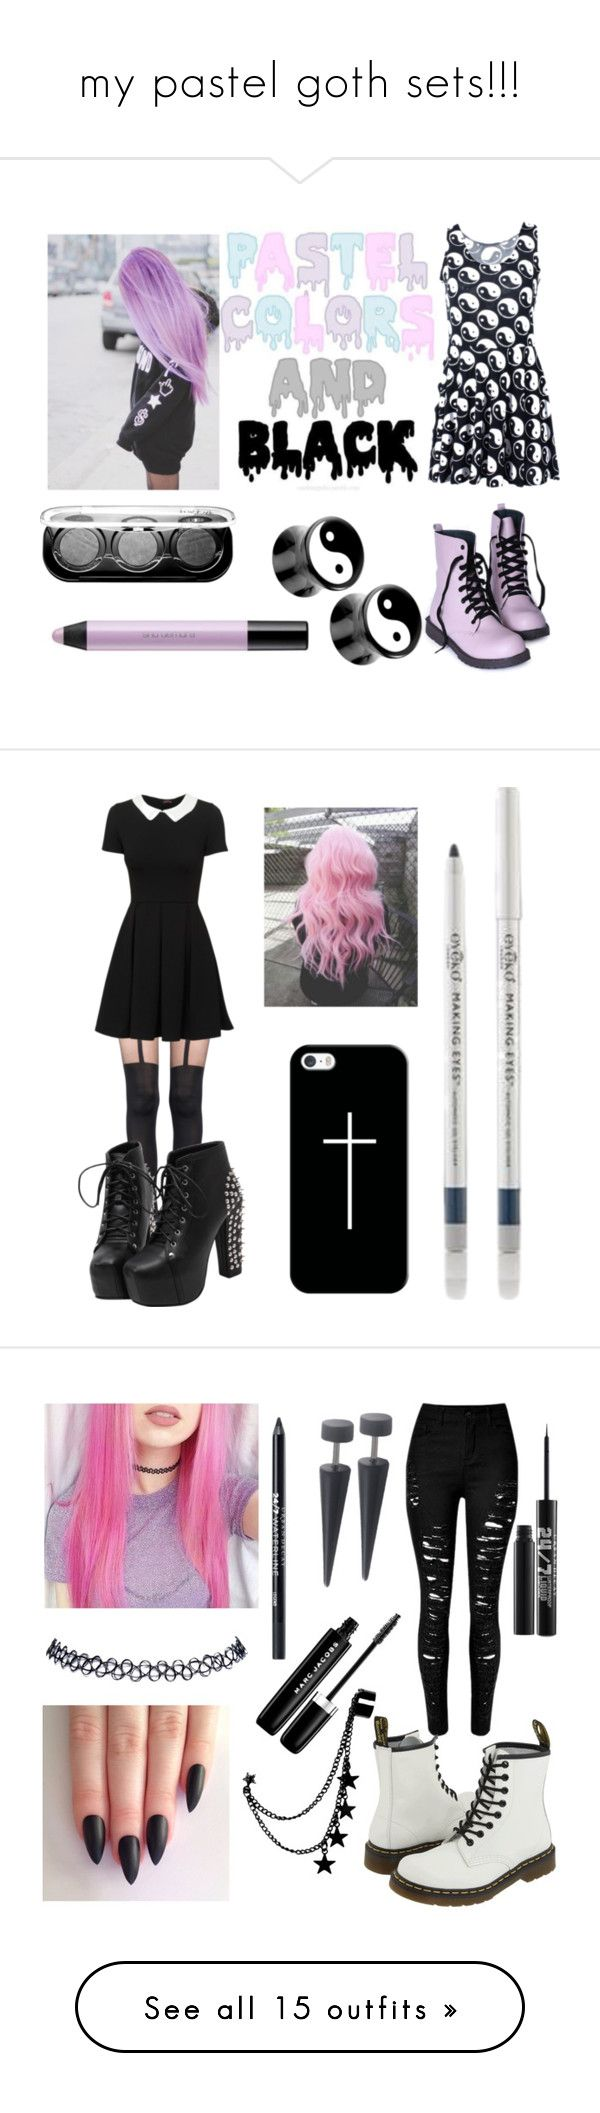 """""""my pastel goth sets!!!"""" by neverlandcth ❤ liked on Polyvore featuring Chicnova Fashion, shu uemura, MAKE UP FOR EVER, Pretty Polly, Casetify, Eyeko, Wet Seal, Marc Jacobs, Urban Decay and Dr. Martens"""